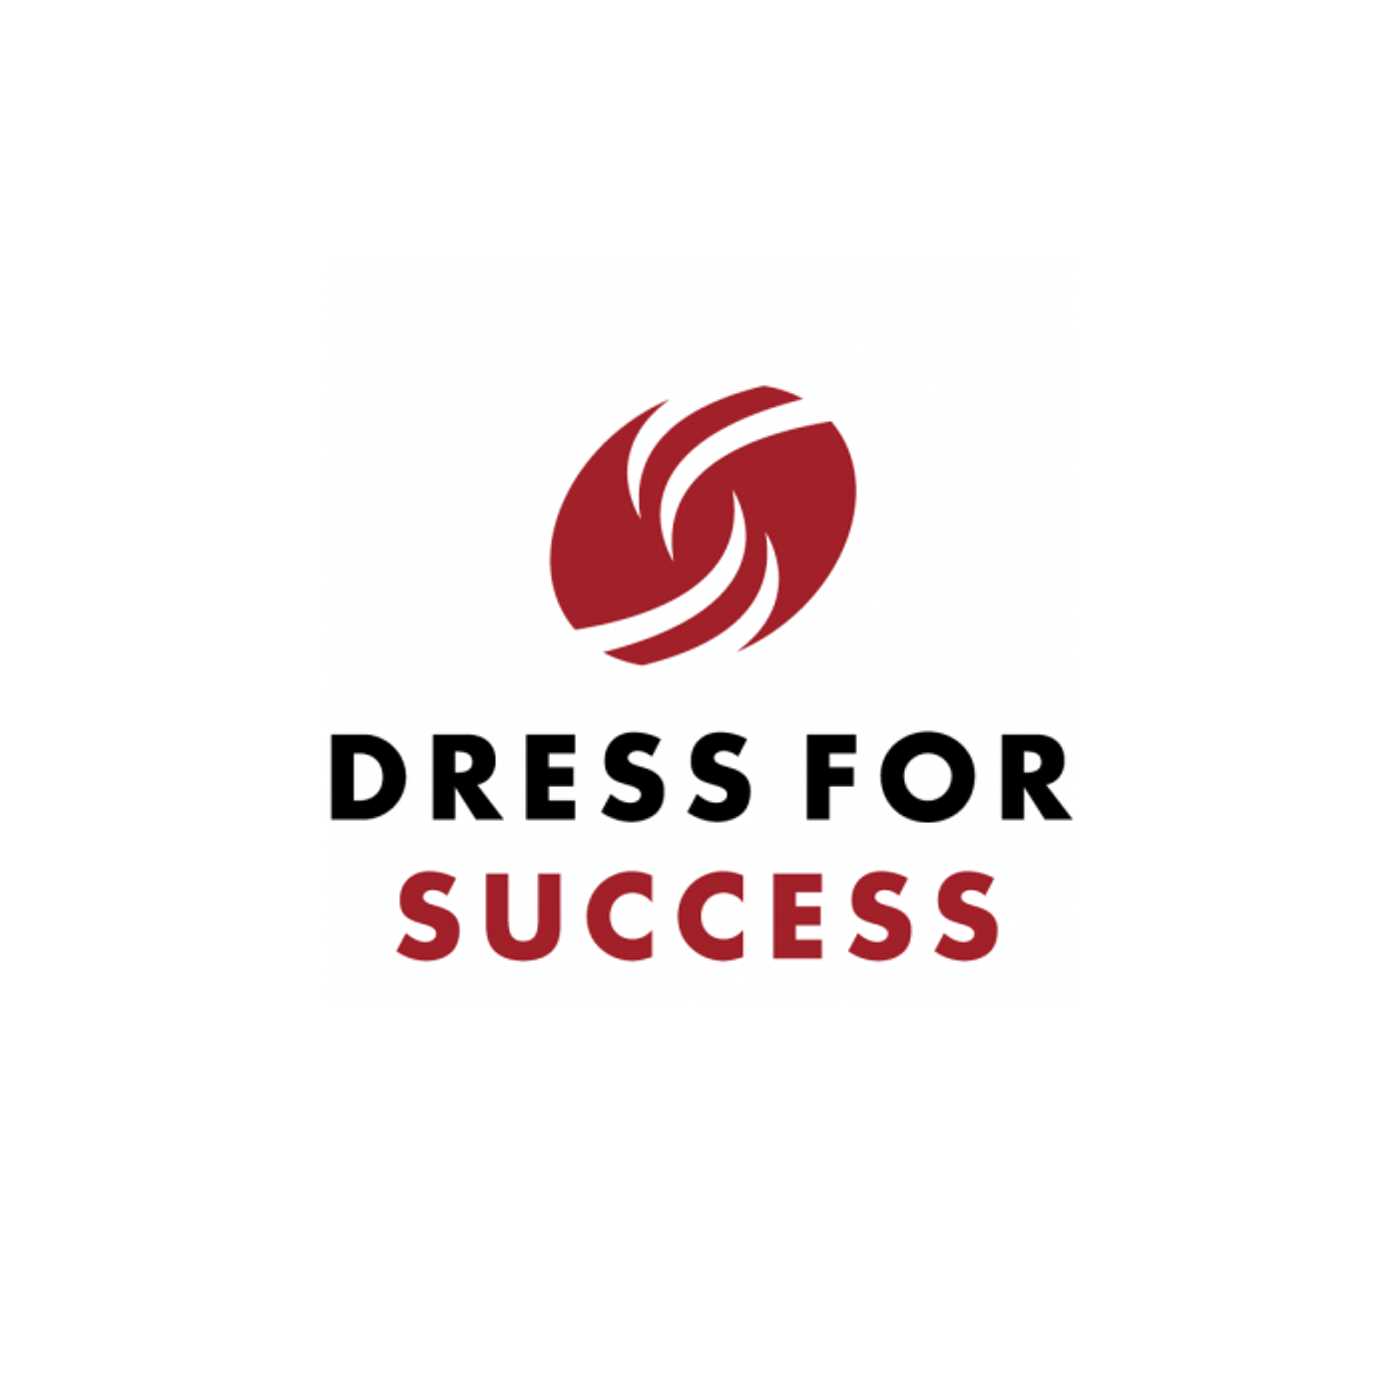 dress-for-success.png